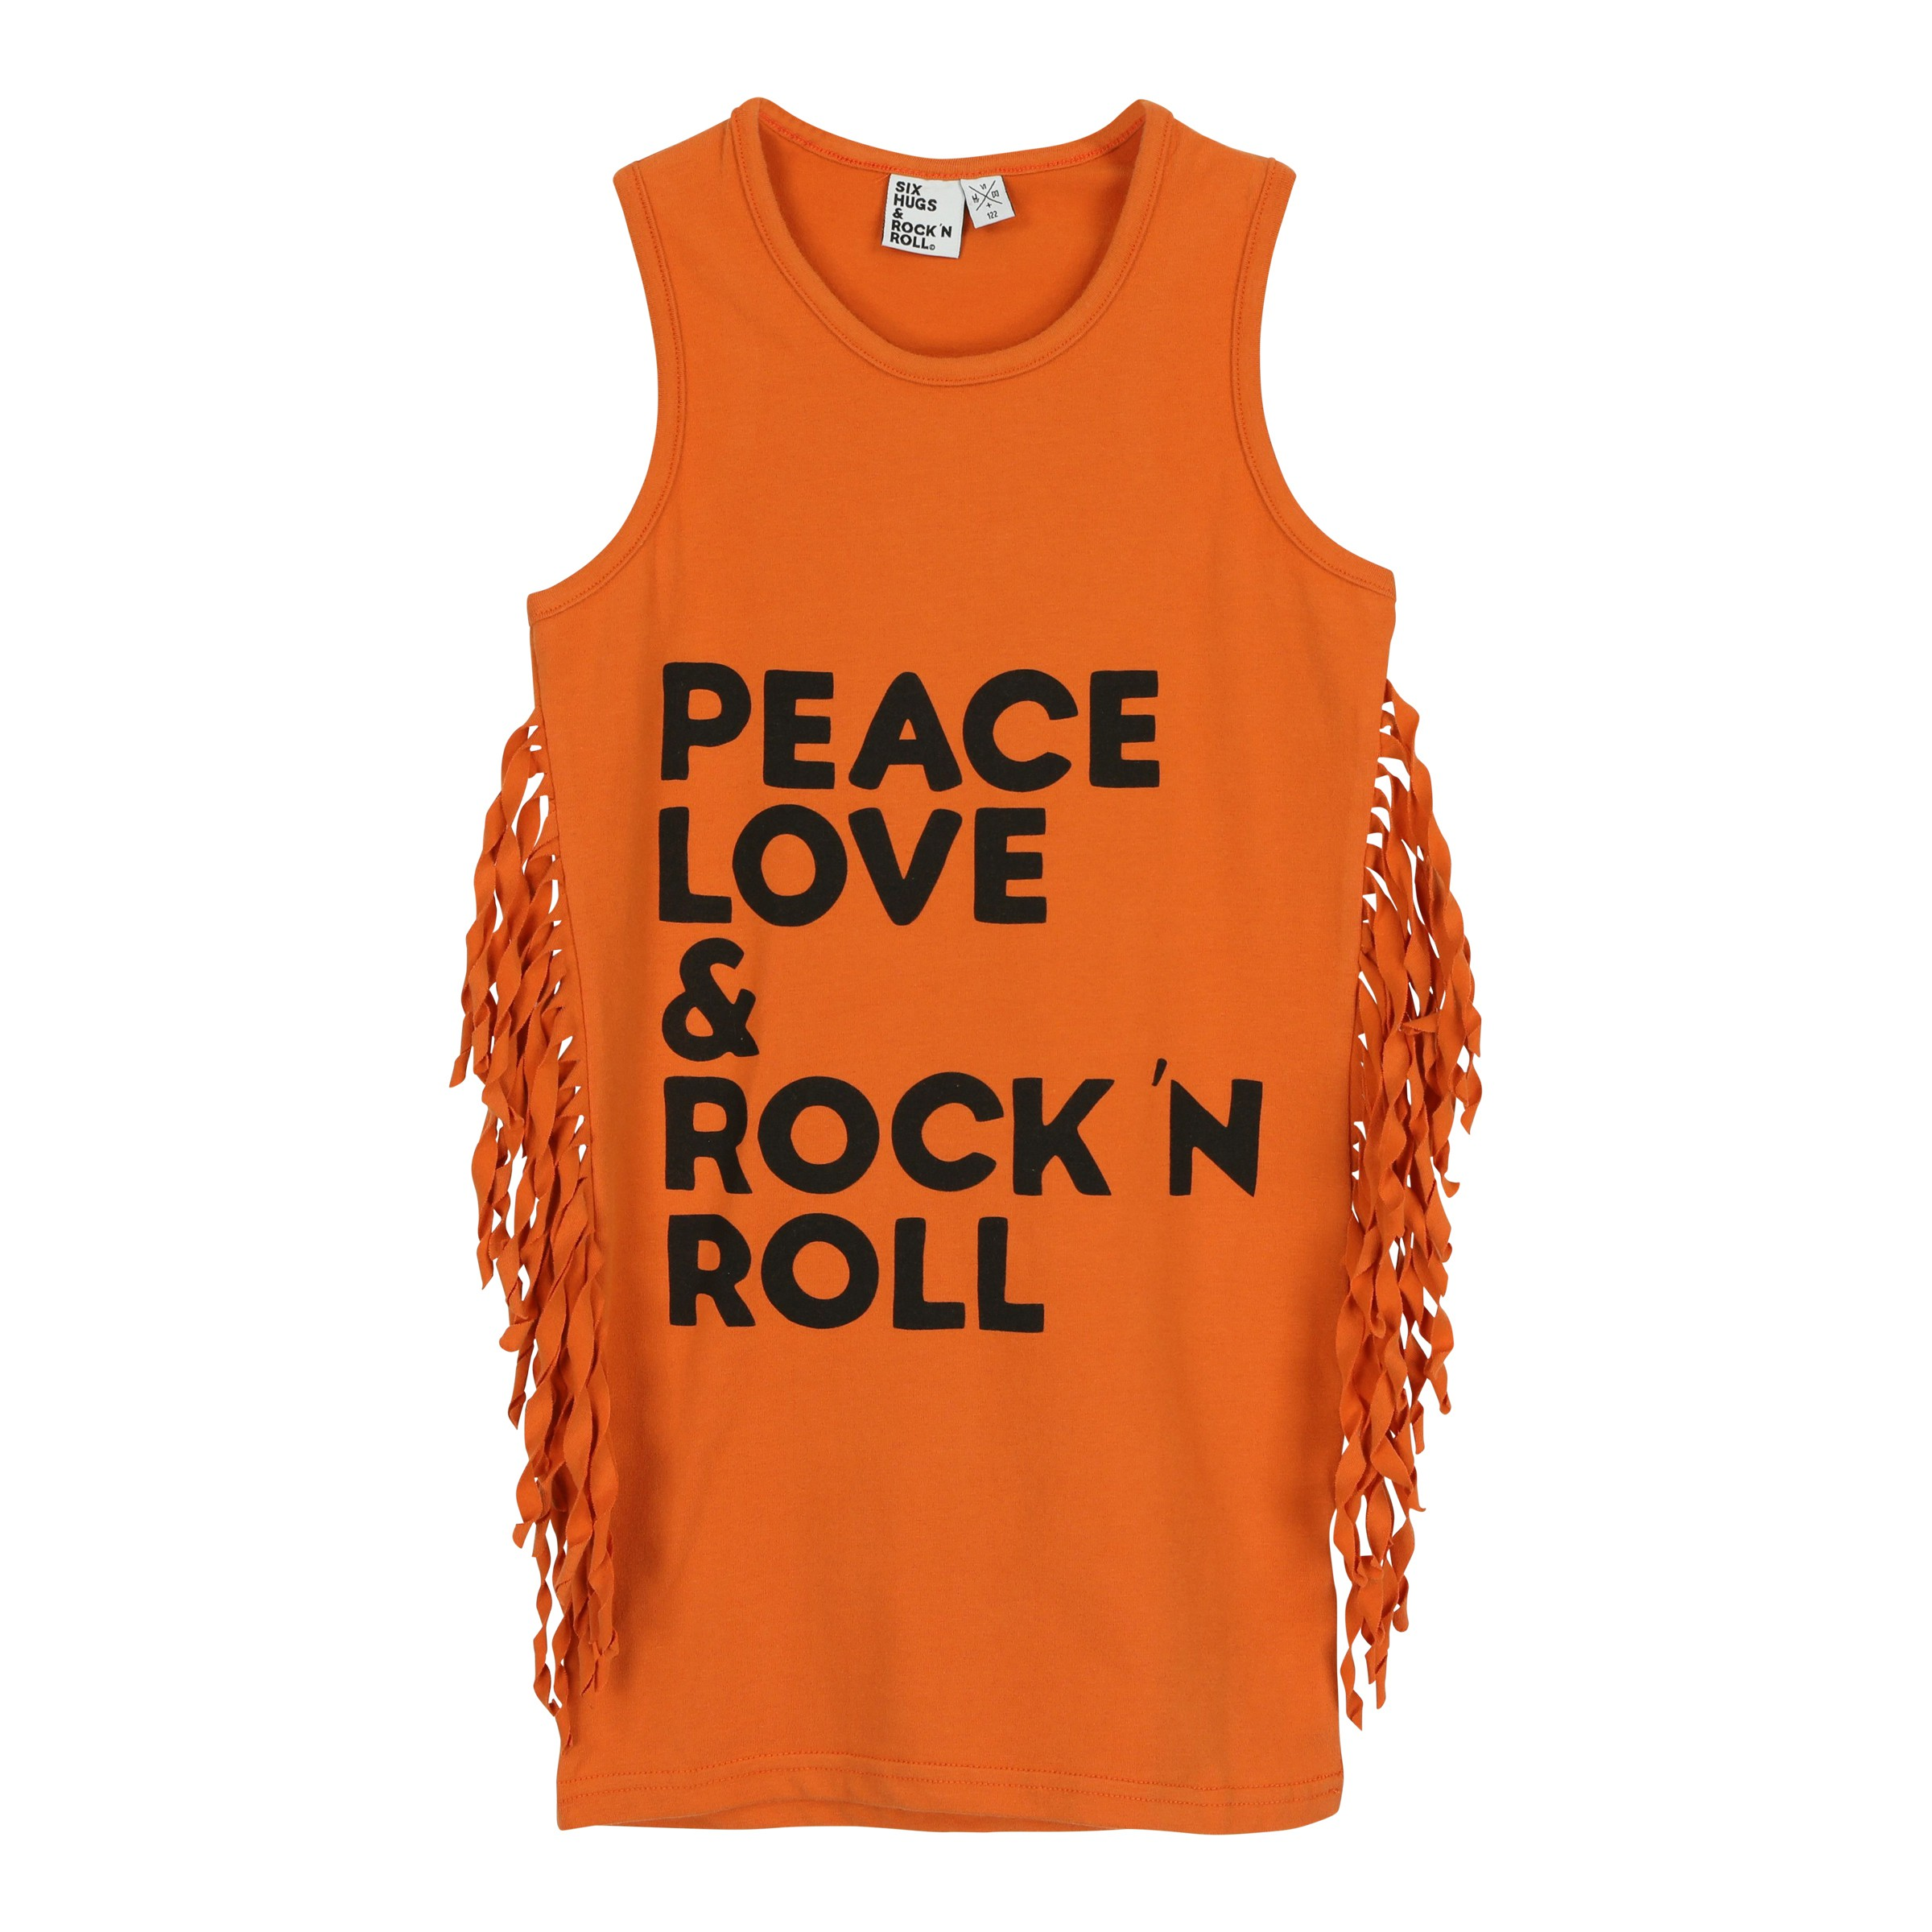 Dress peace love